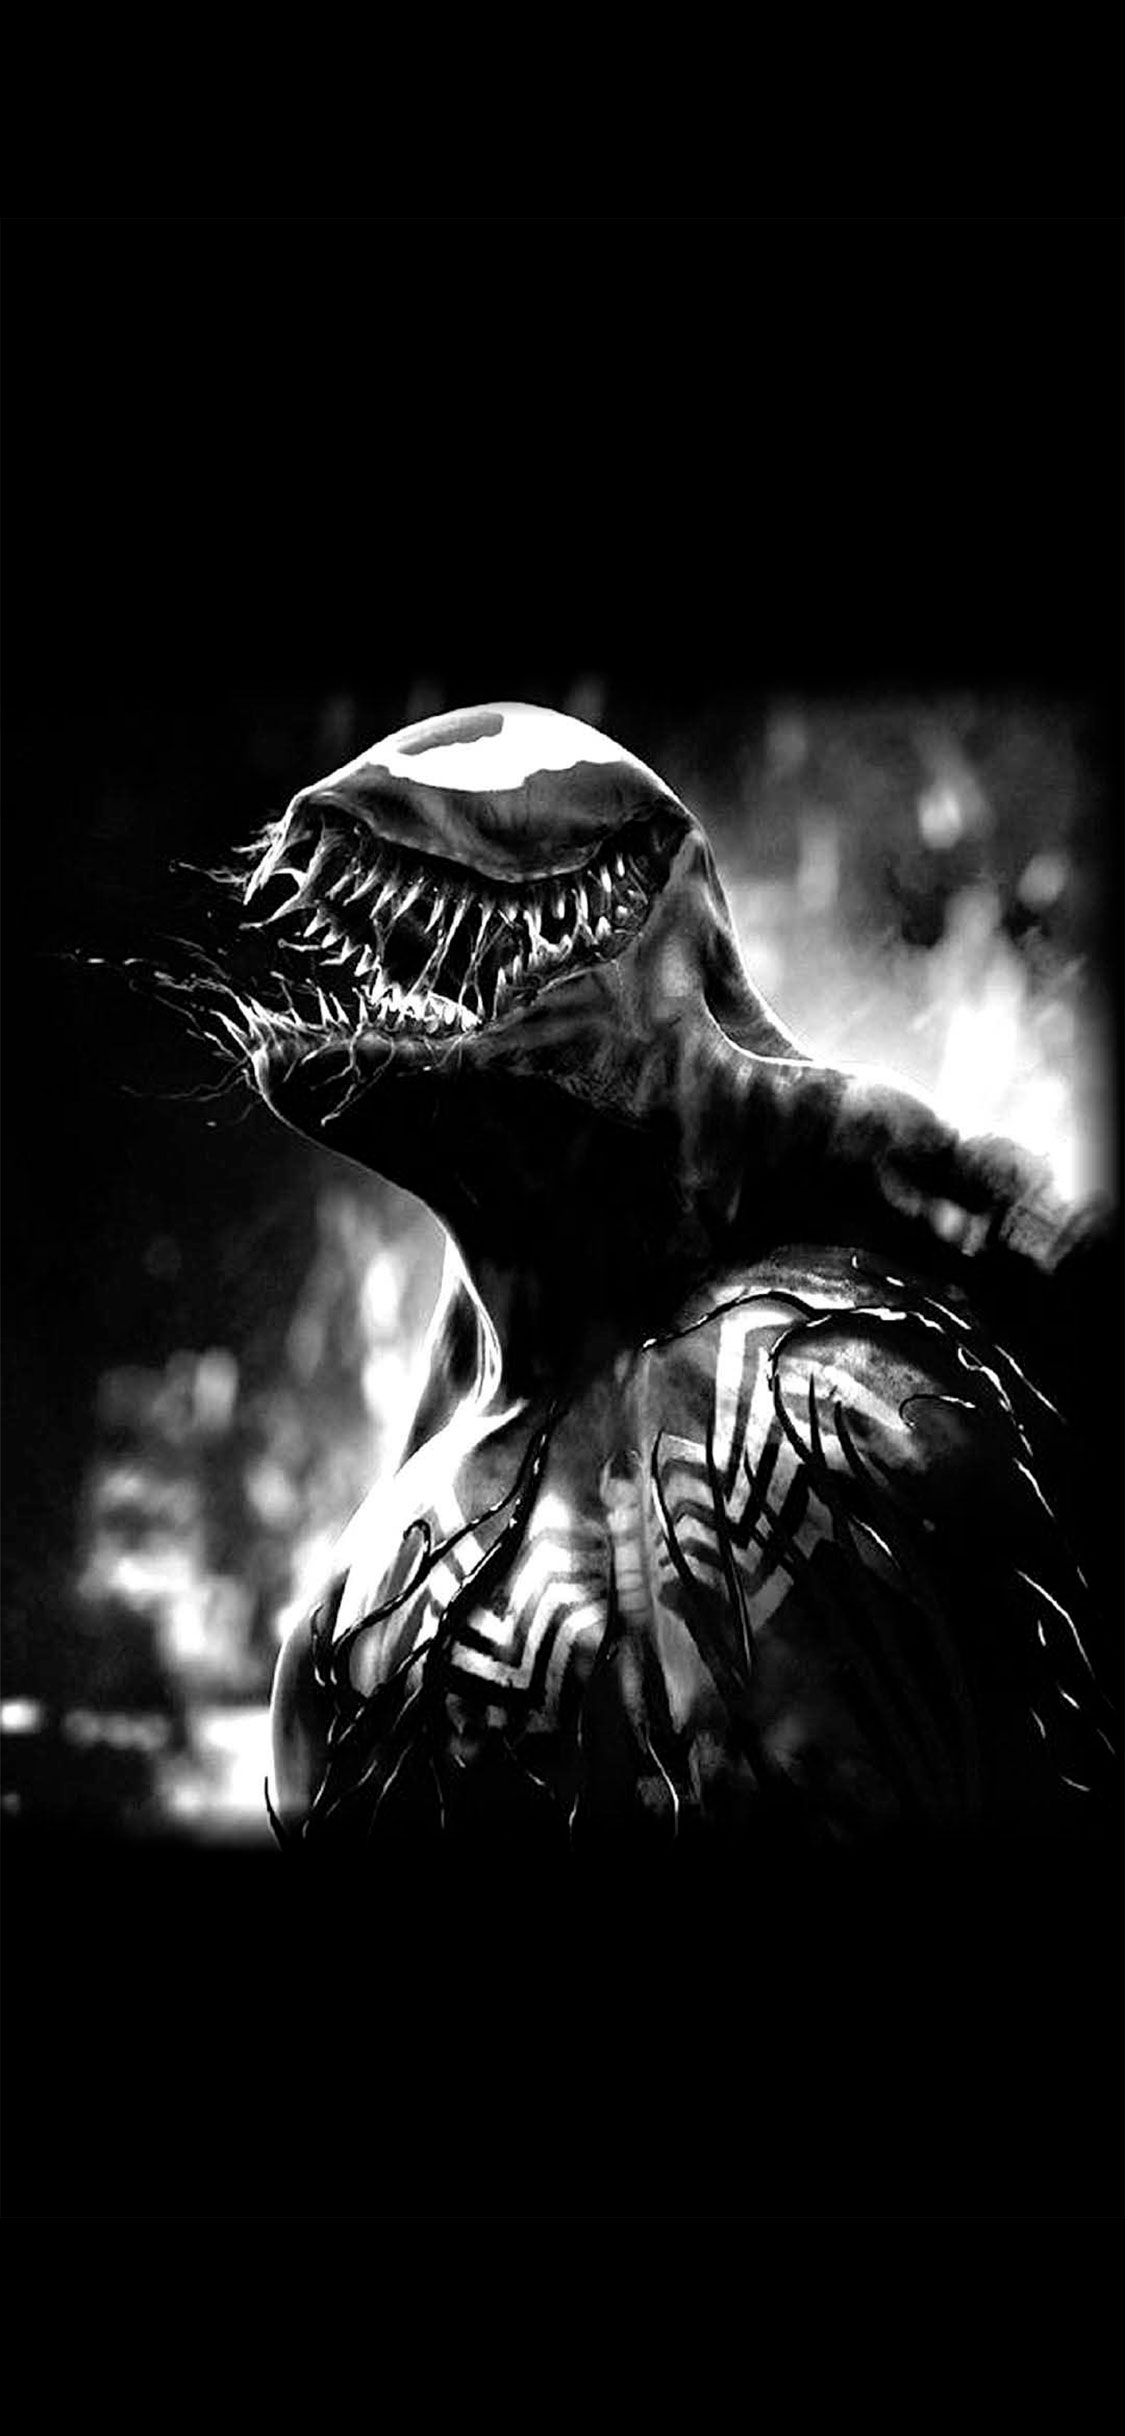 iPhone wallpaper venom1 Venom